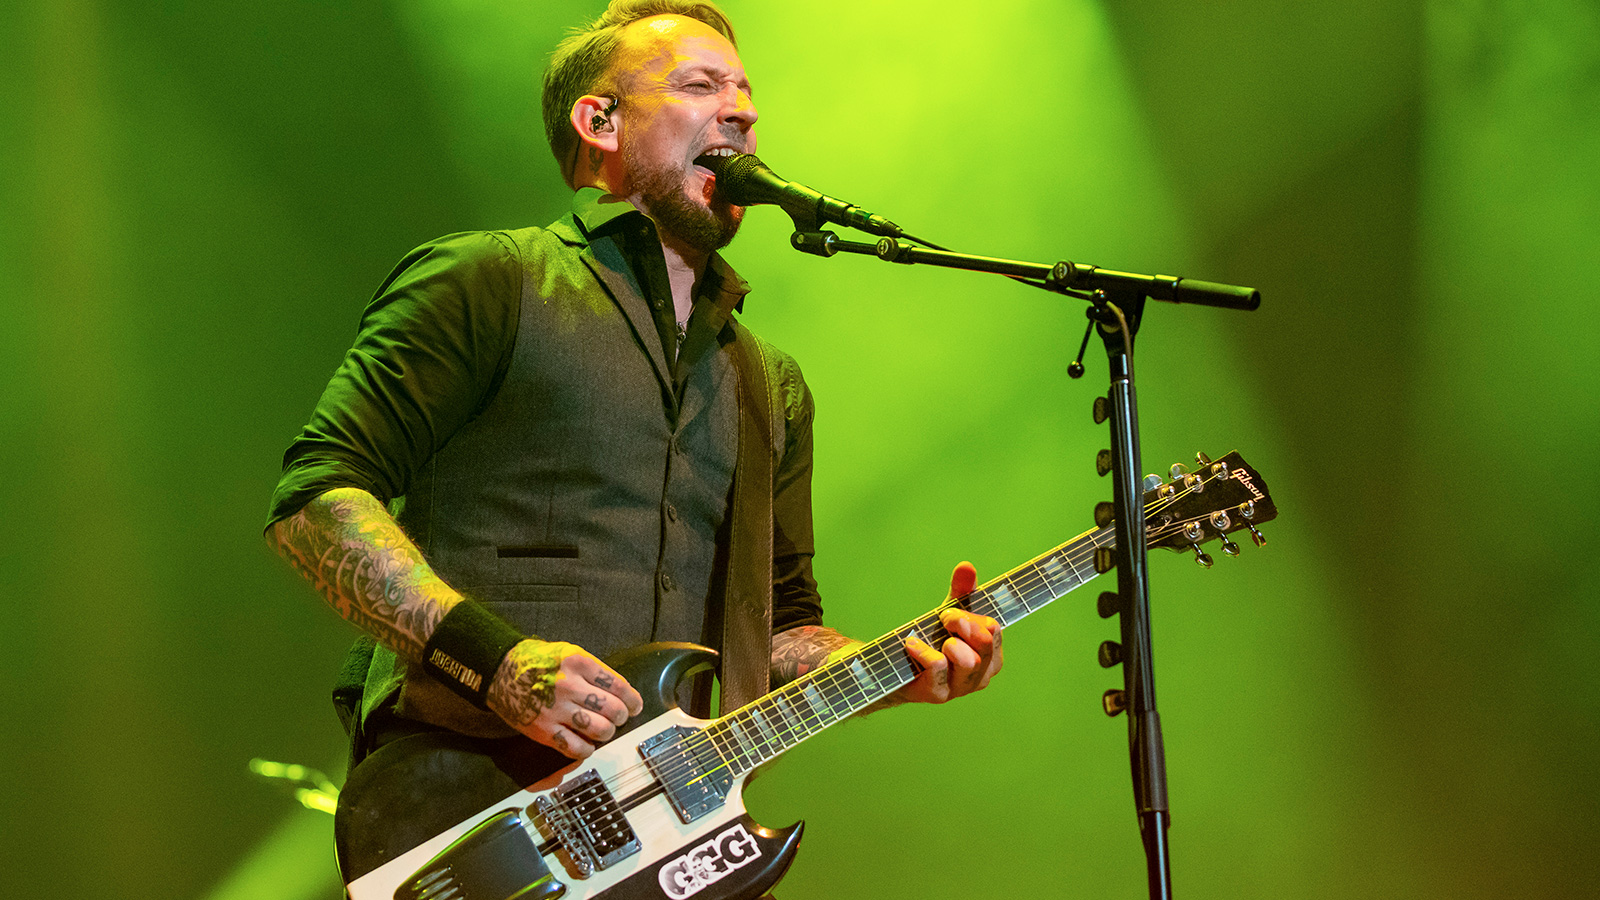 """Hear Volbeat's Anthemic New Song """"Last Day Under the Sun"""" Inspired by Johnny Cash"""